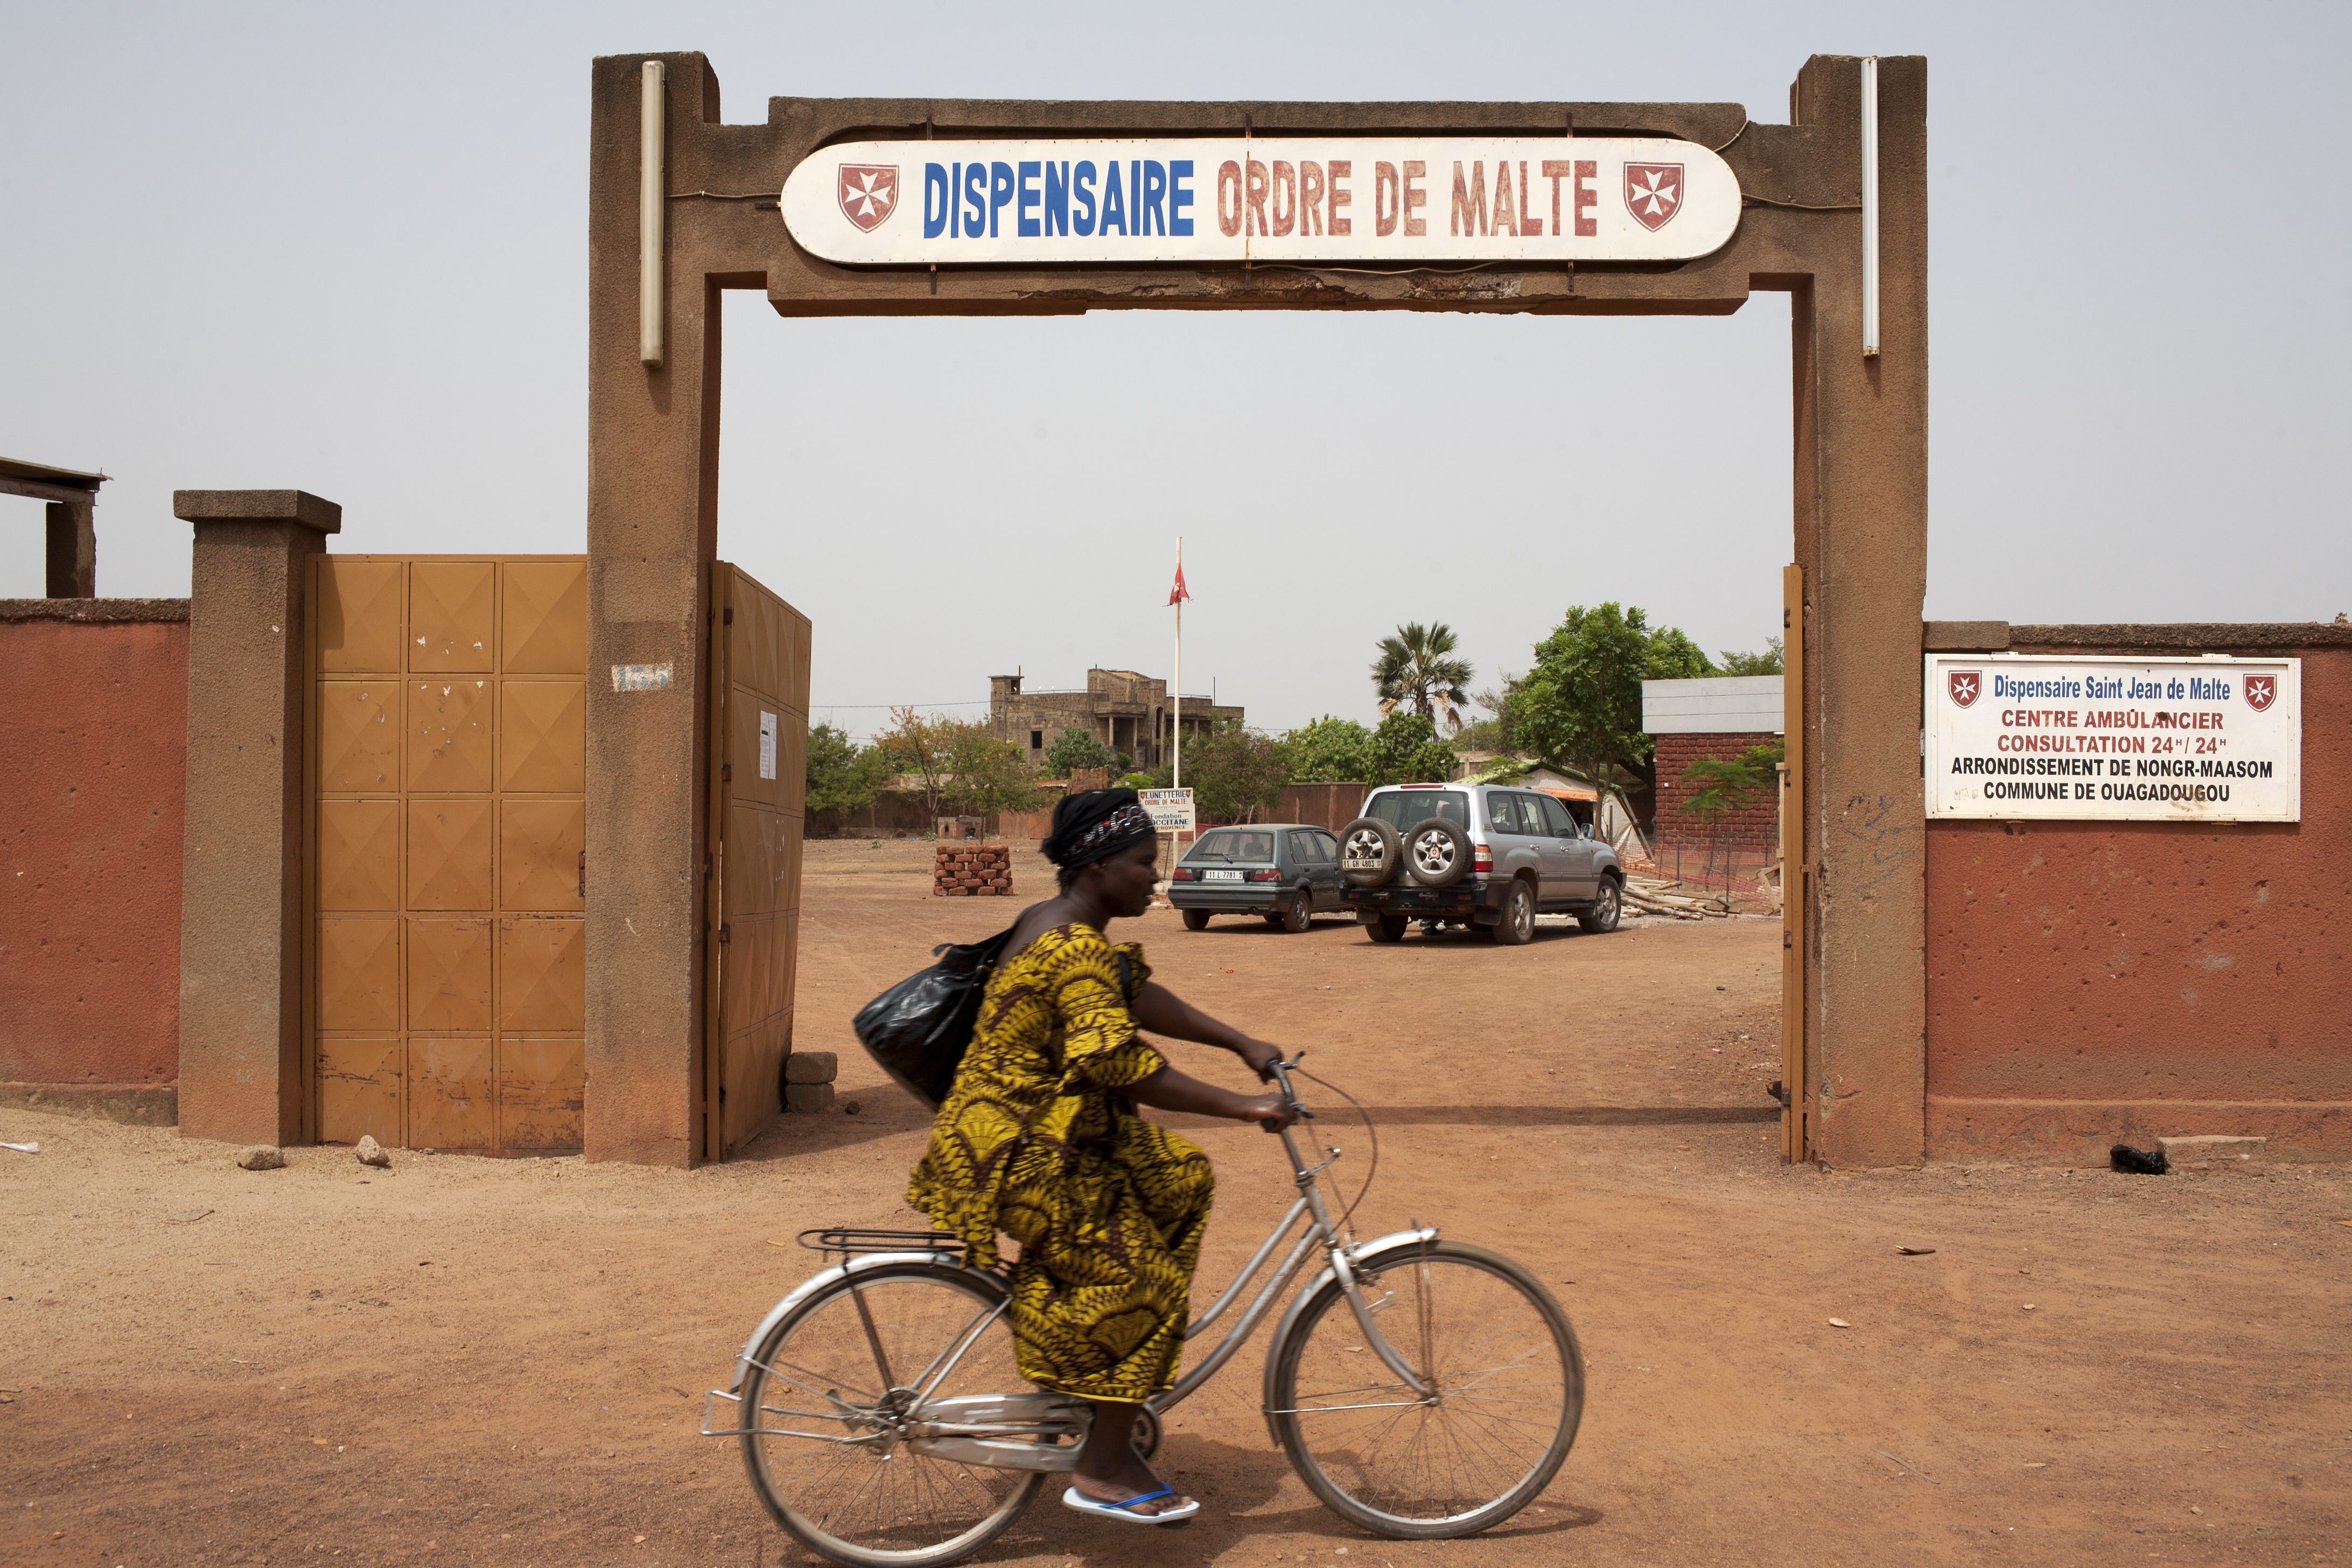 Dispensaire Burkina Faso